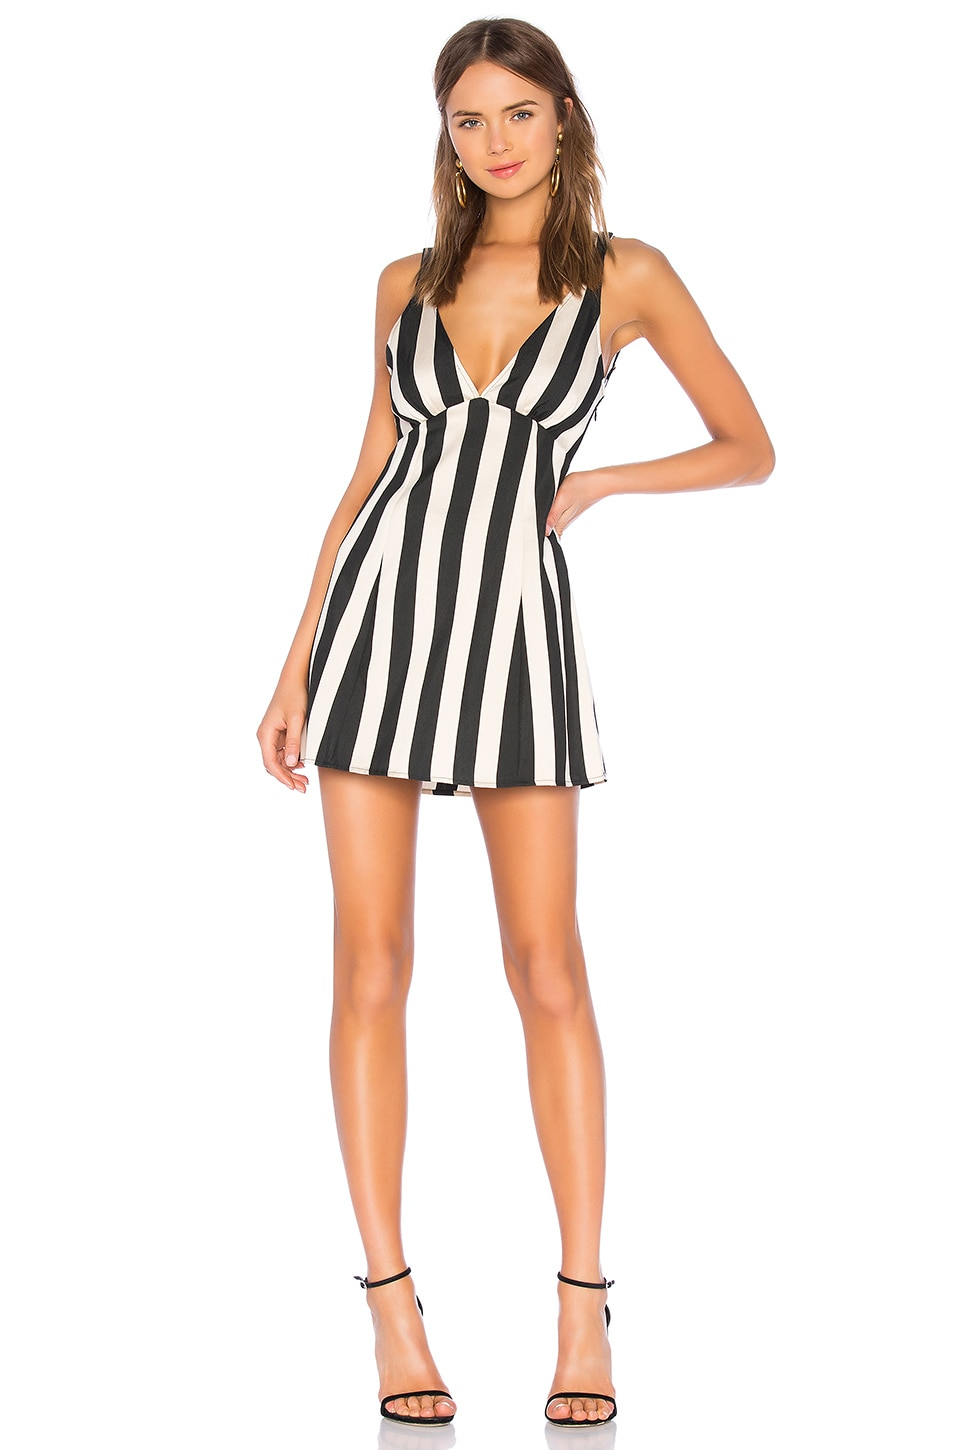 LPA Deep V Dress in Black & White